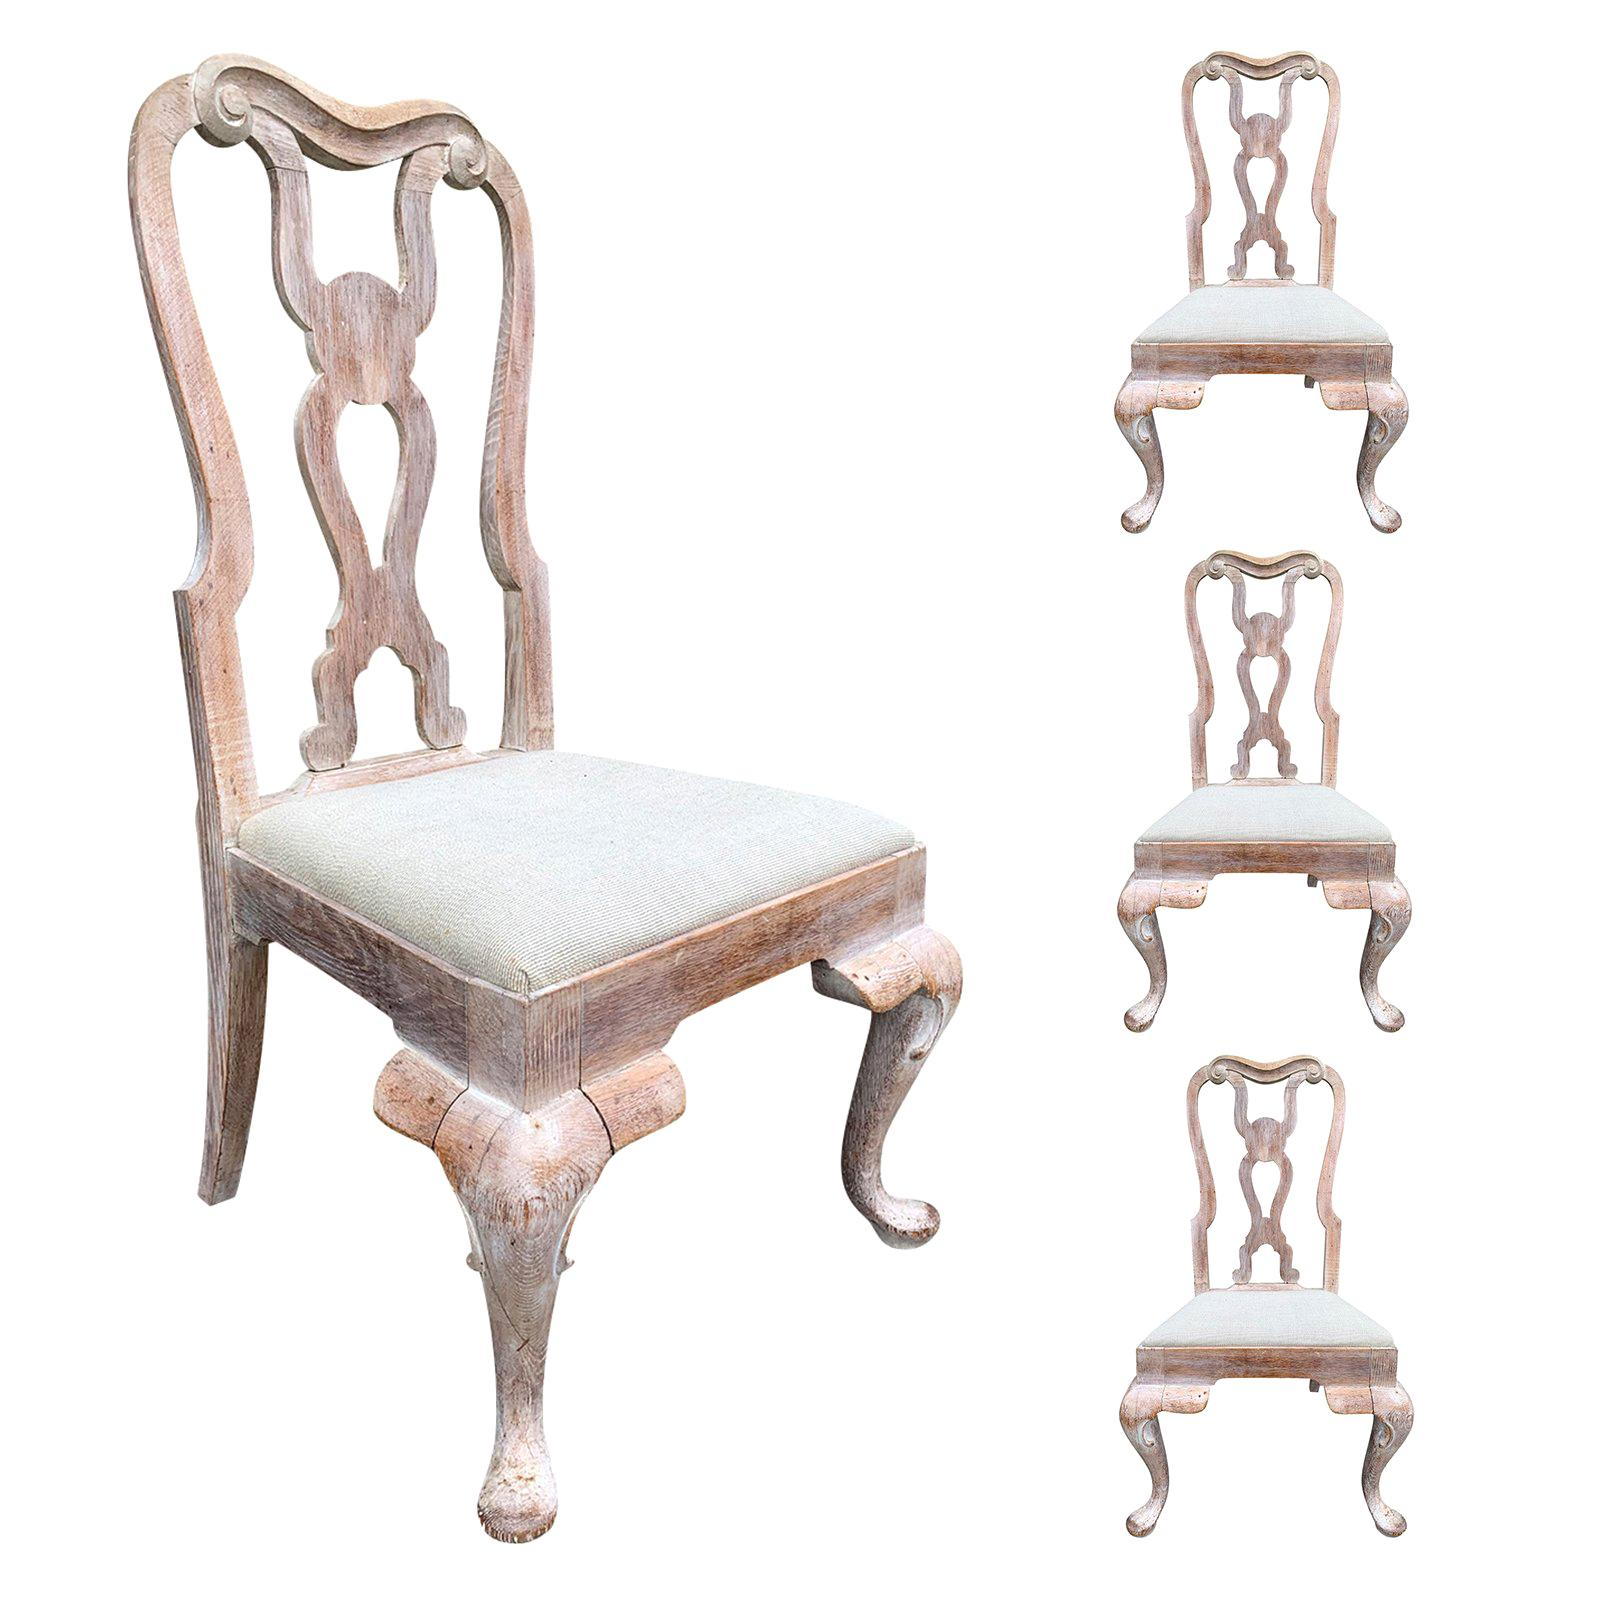 Set of Four 18th-19th Century English Stripped Oak Side Chairs